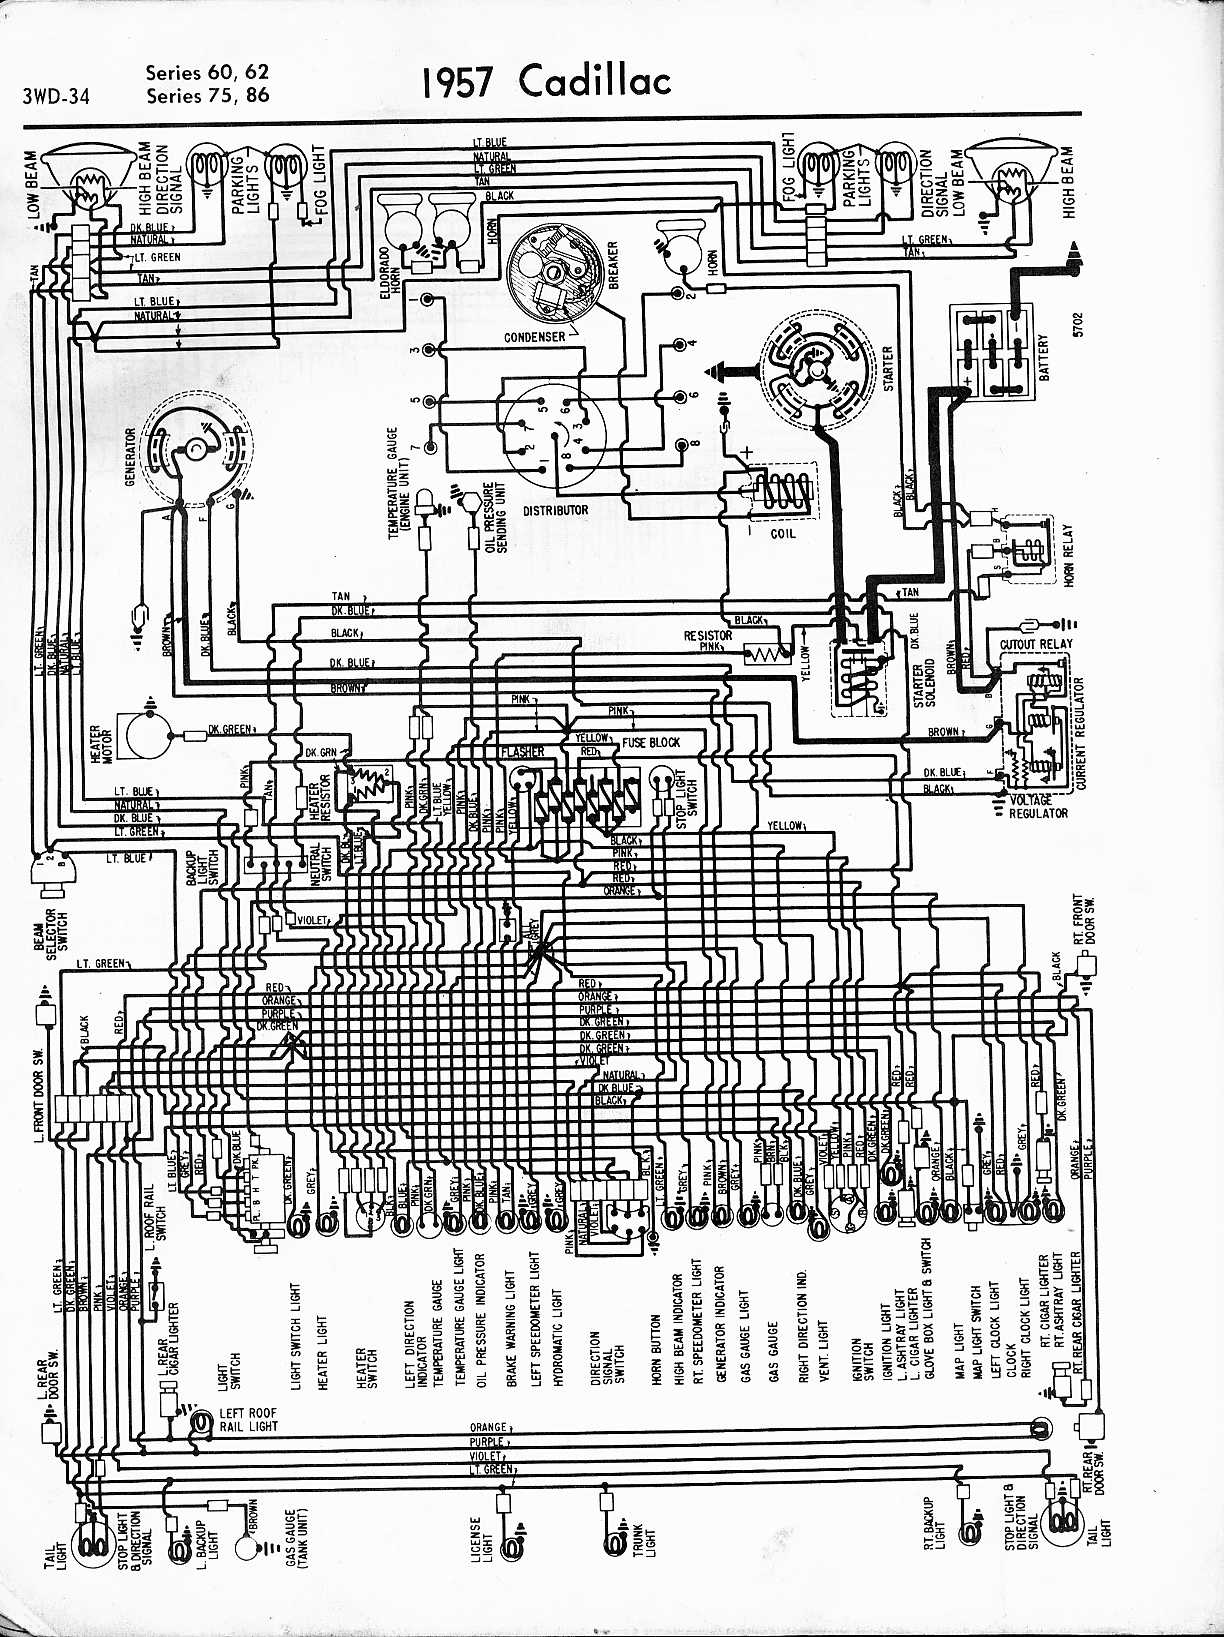 52 Cadillac Wiring Diagram Archive Of Automotive 1969 Arctic Cat Diagrams 1957 1965 Rh Oldcarmanualproject Com